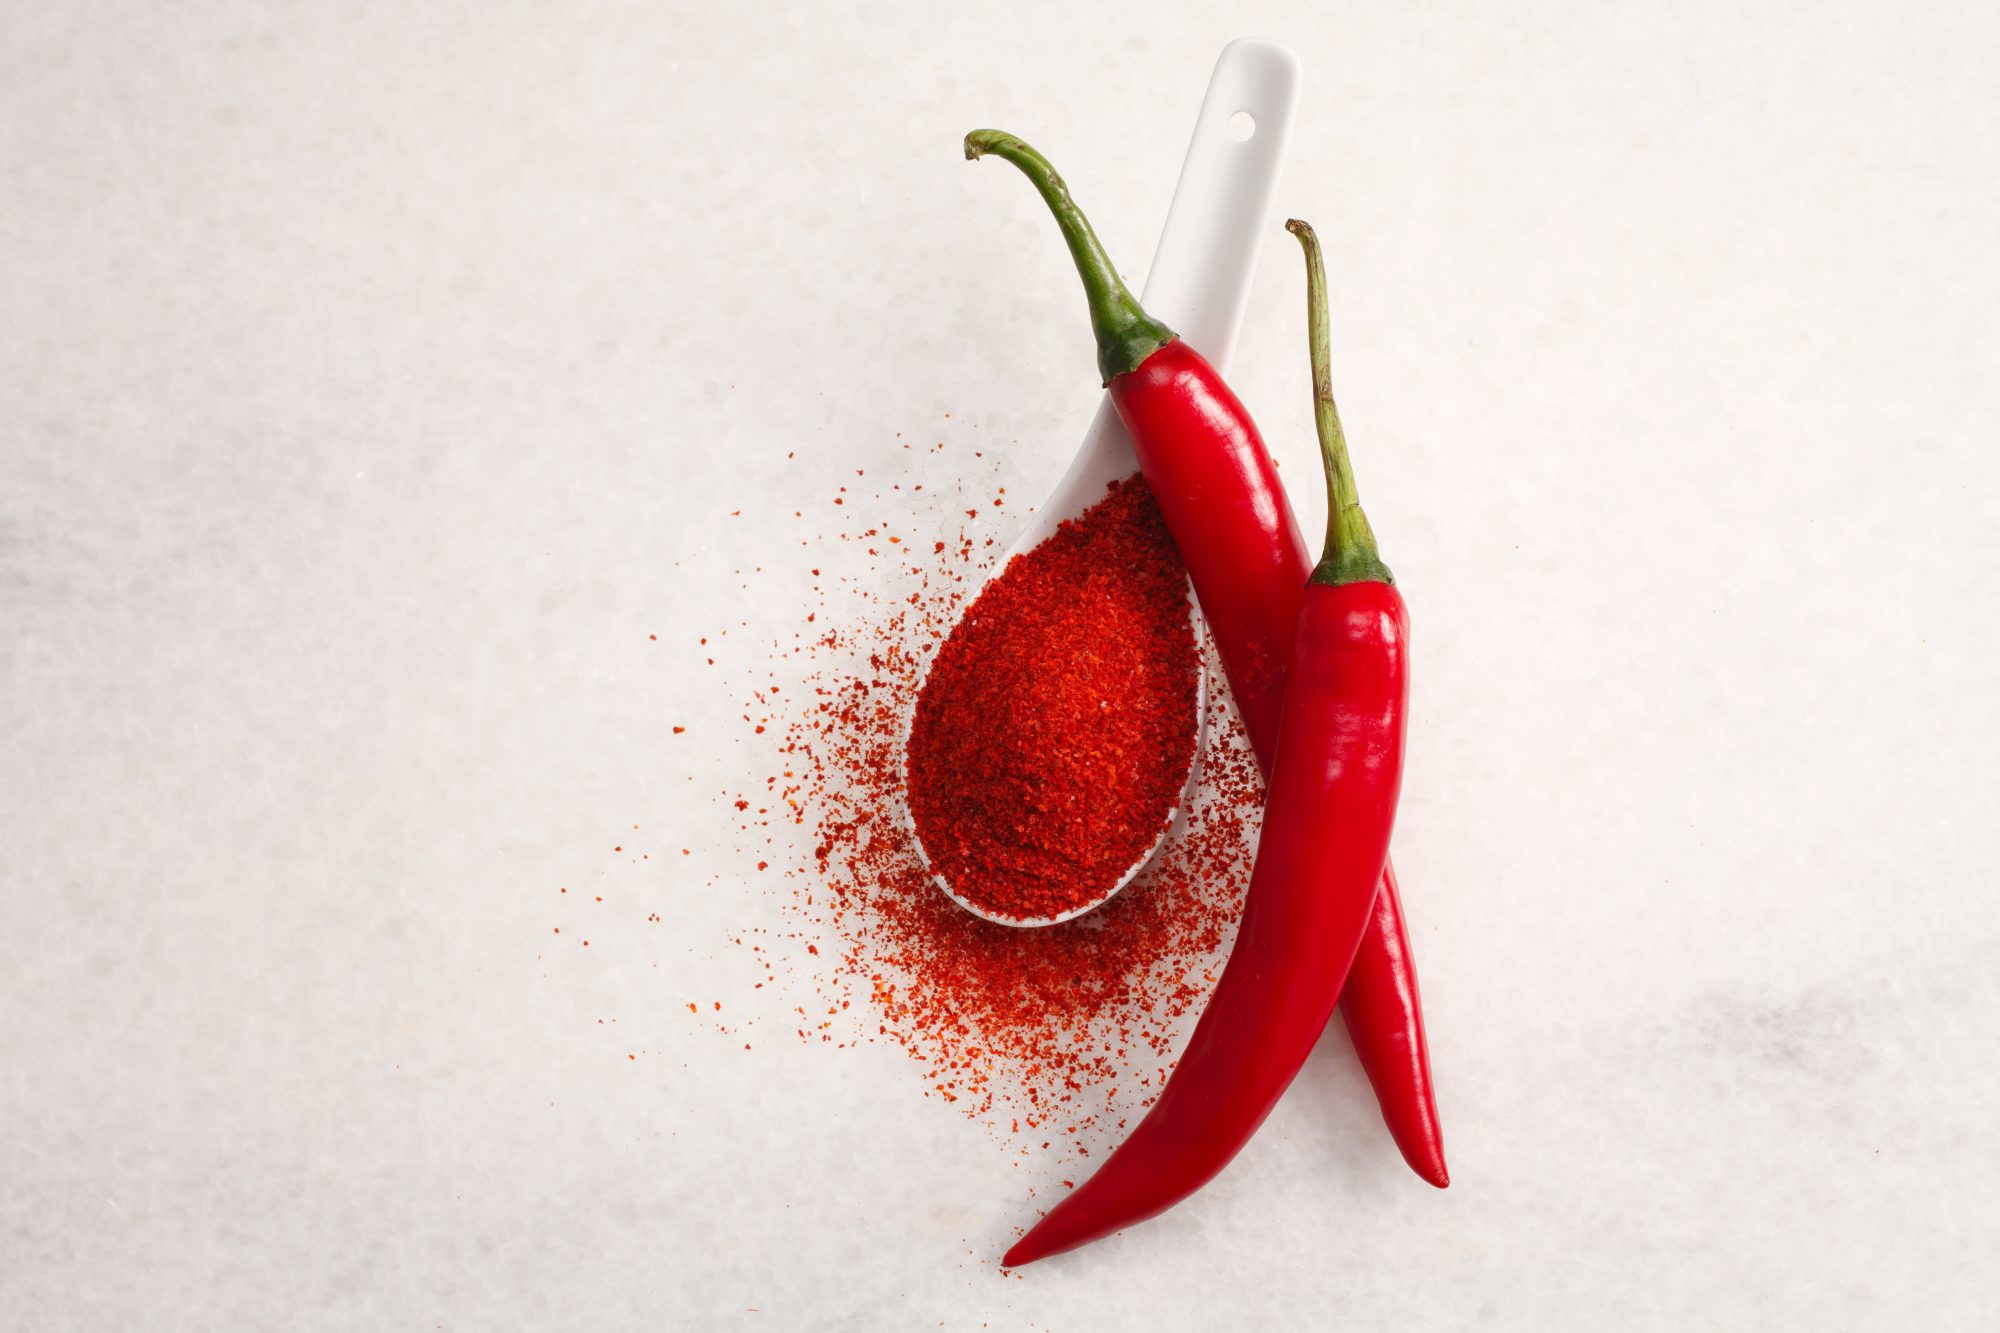 Acidic or Spicy Foods